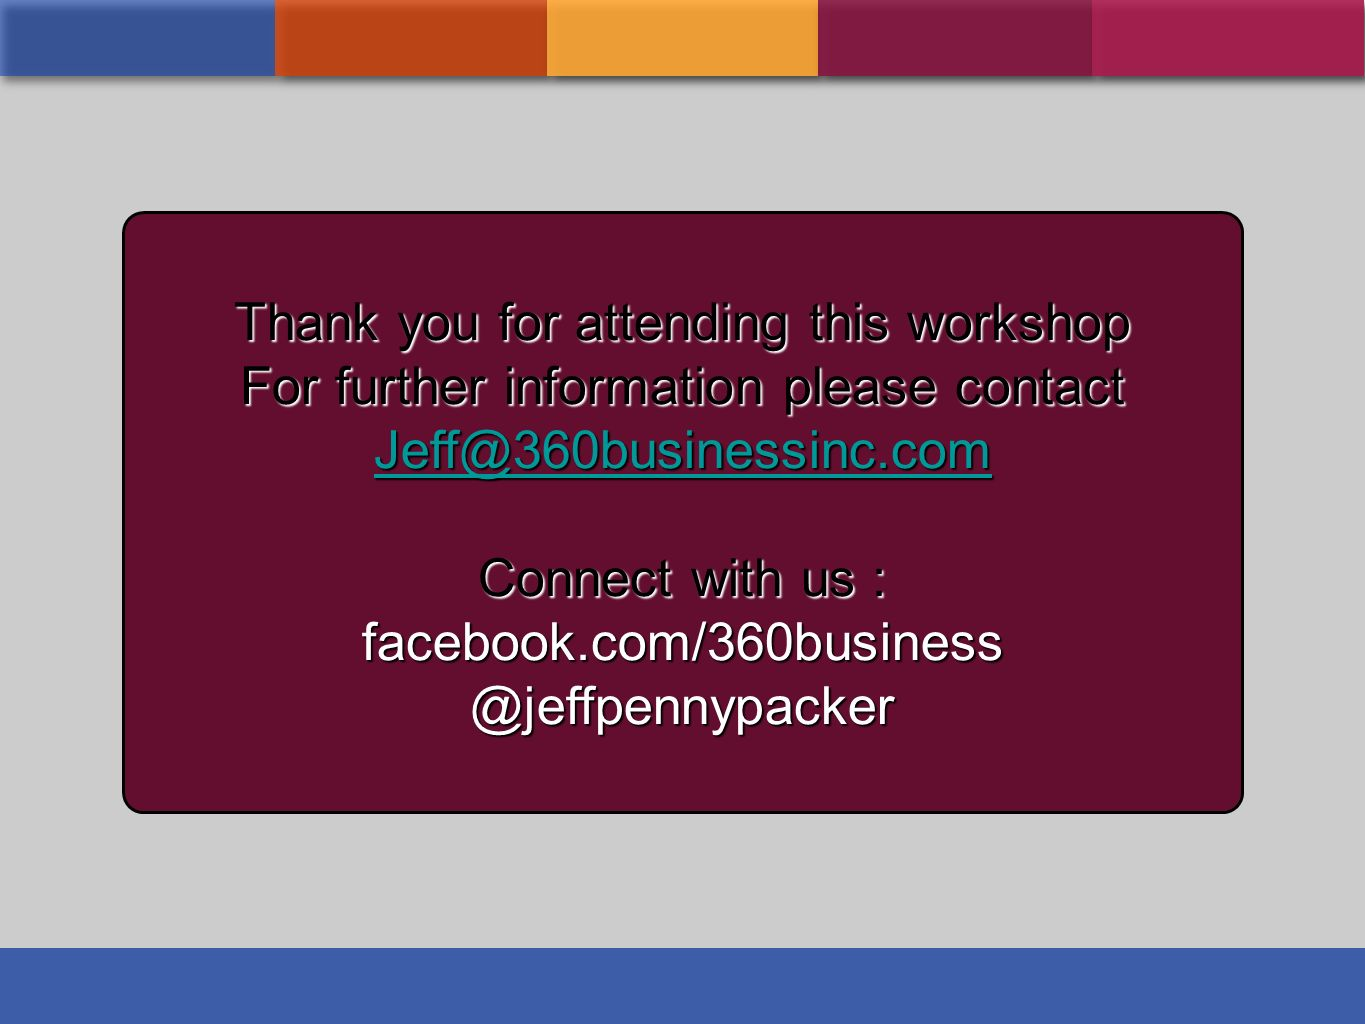 Thank you for attending this workshop